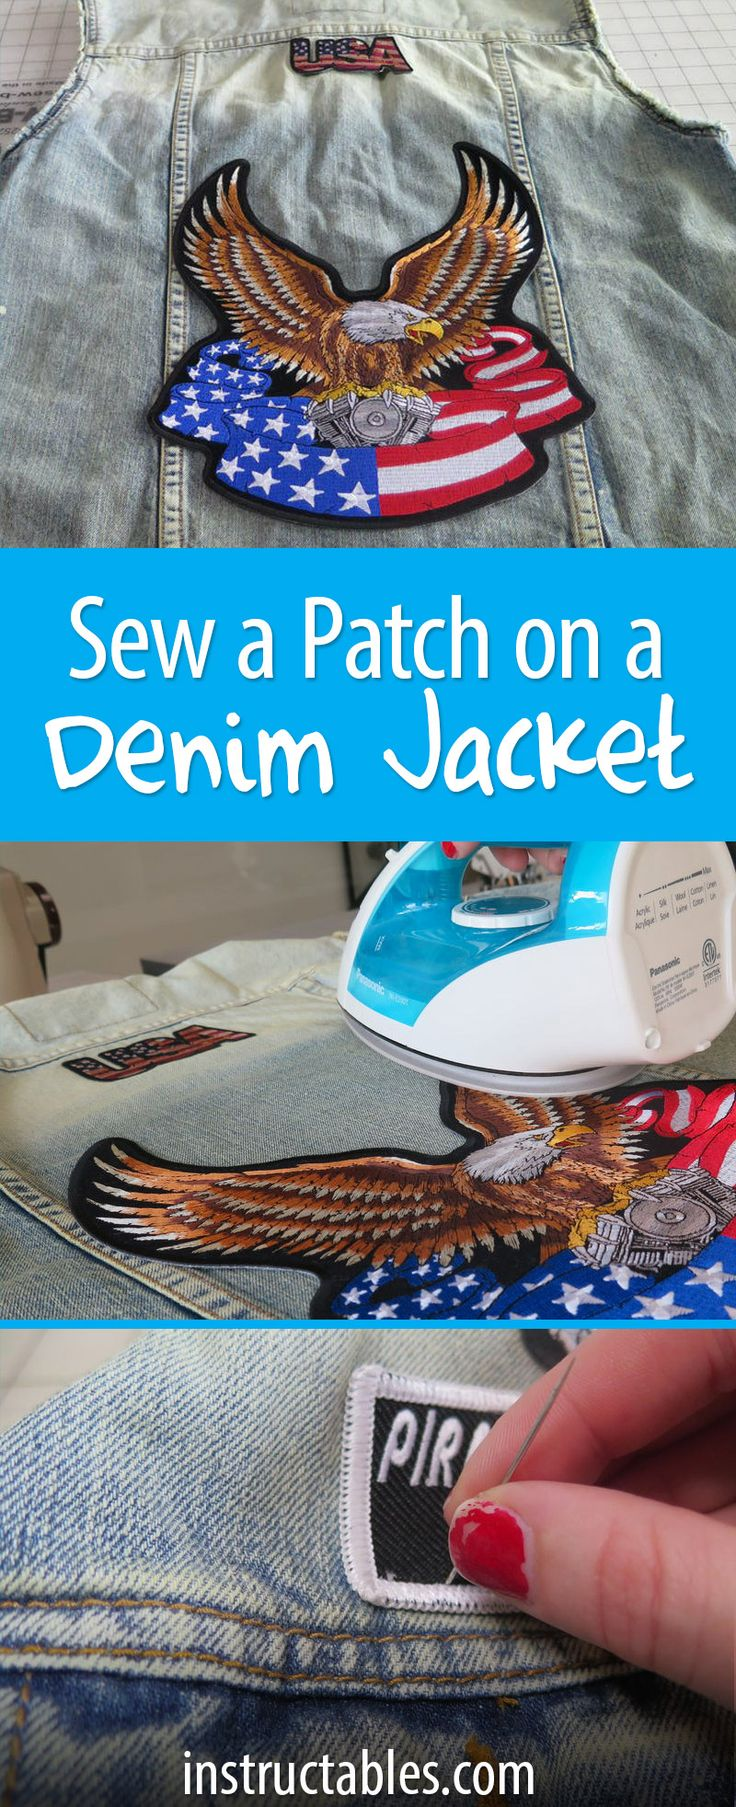 Learn to easily sew a patch on a jacket, pants, or any fabric. This covers both sew-on and iron-on patches. Bookmark it!